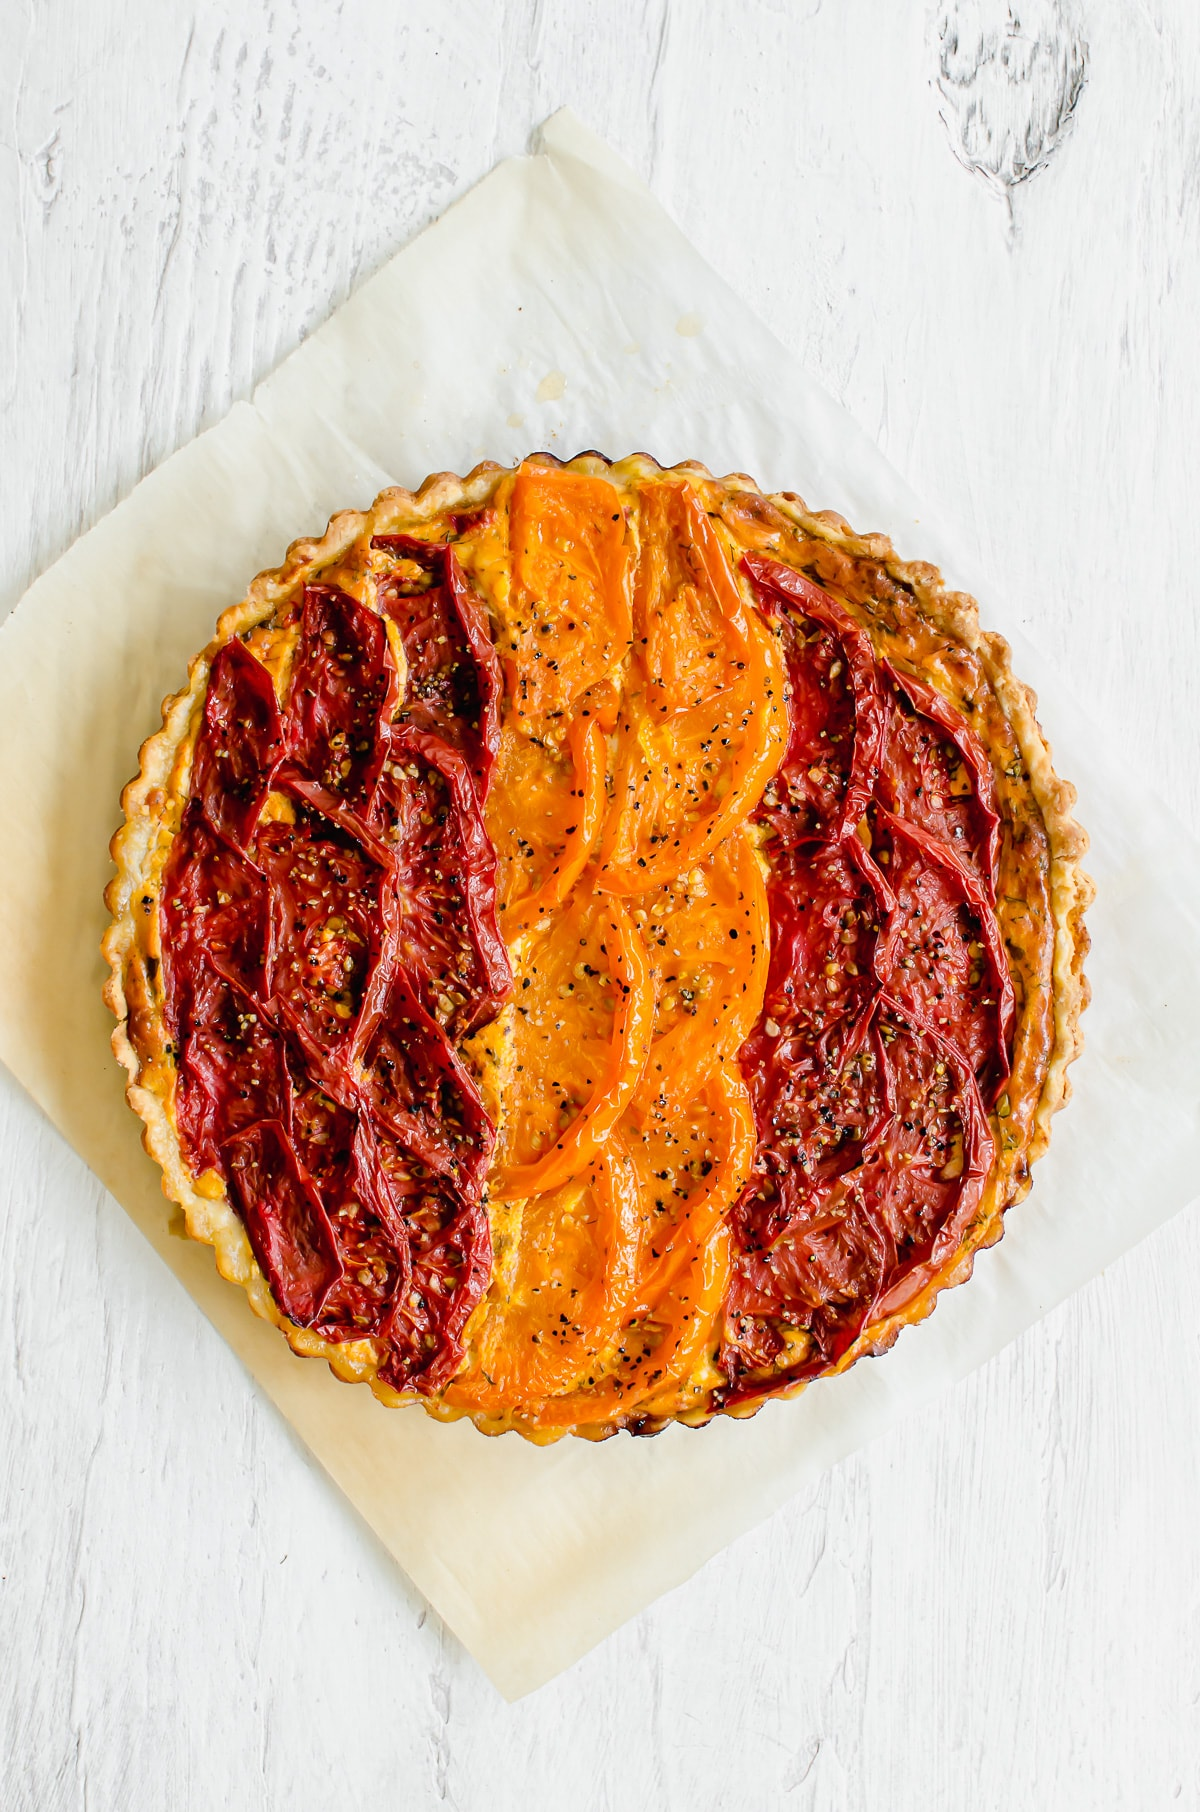 A baked tomato tart on a sheet of parchment paper.